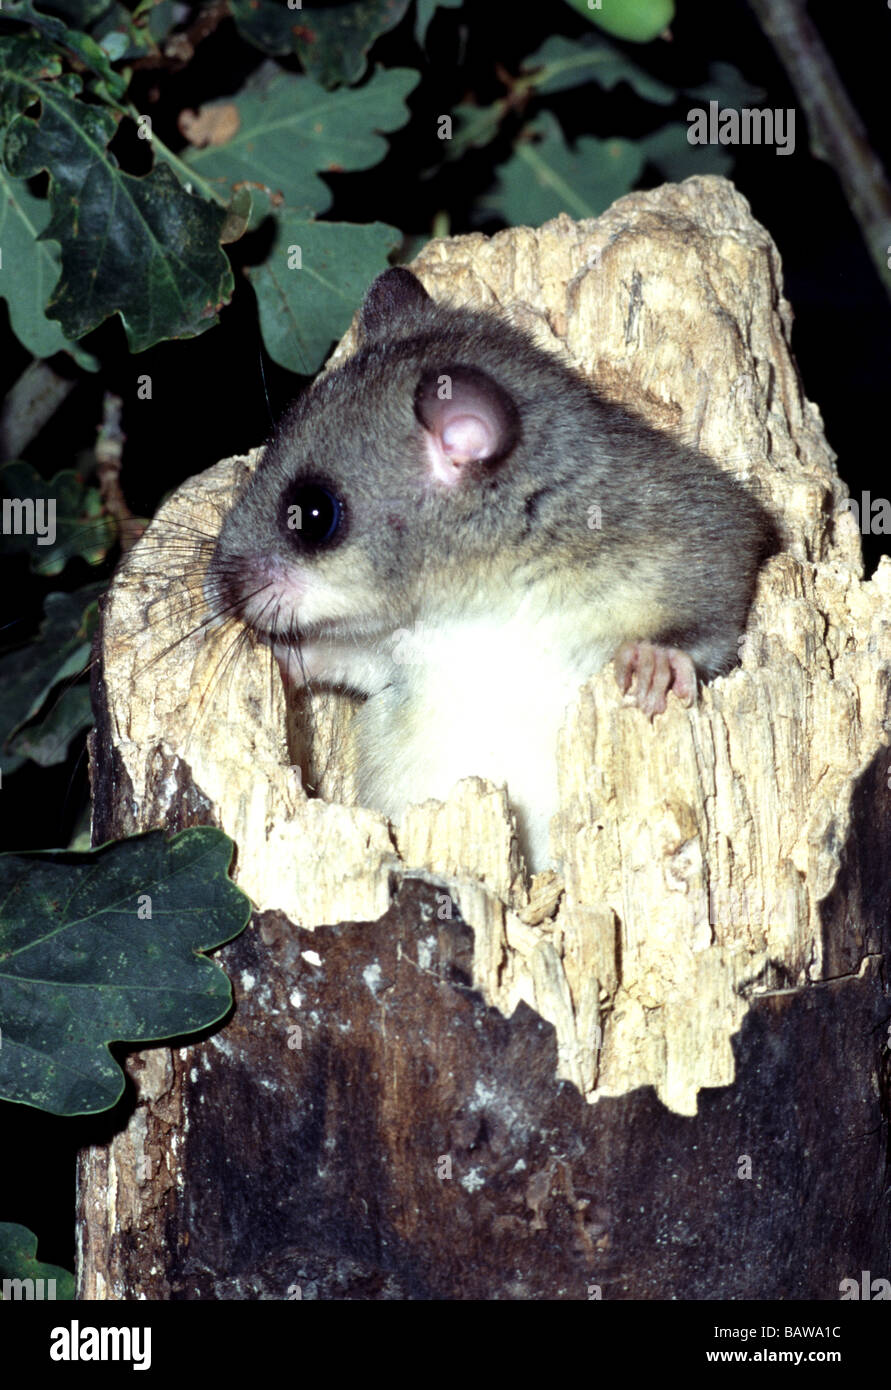 Mammals;Fat or Edible Dormouse;'Glis glis';Adult looking out of a hole in a rotten tree stump; - Stock Image